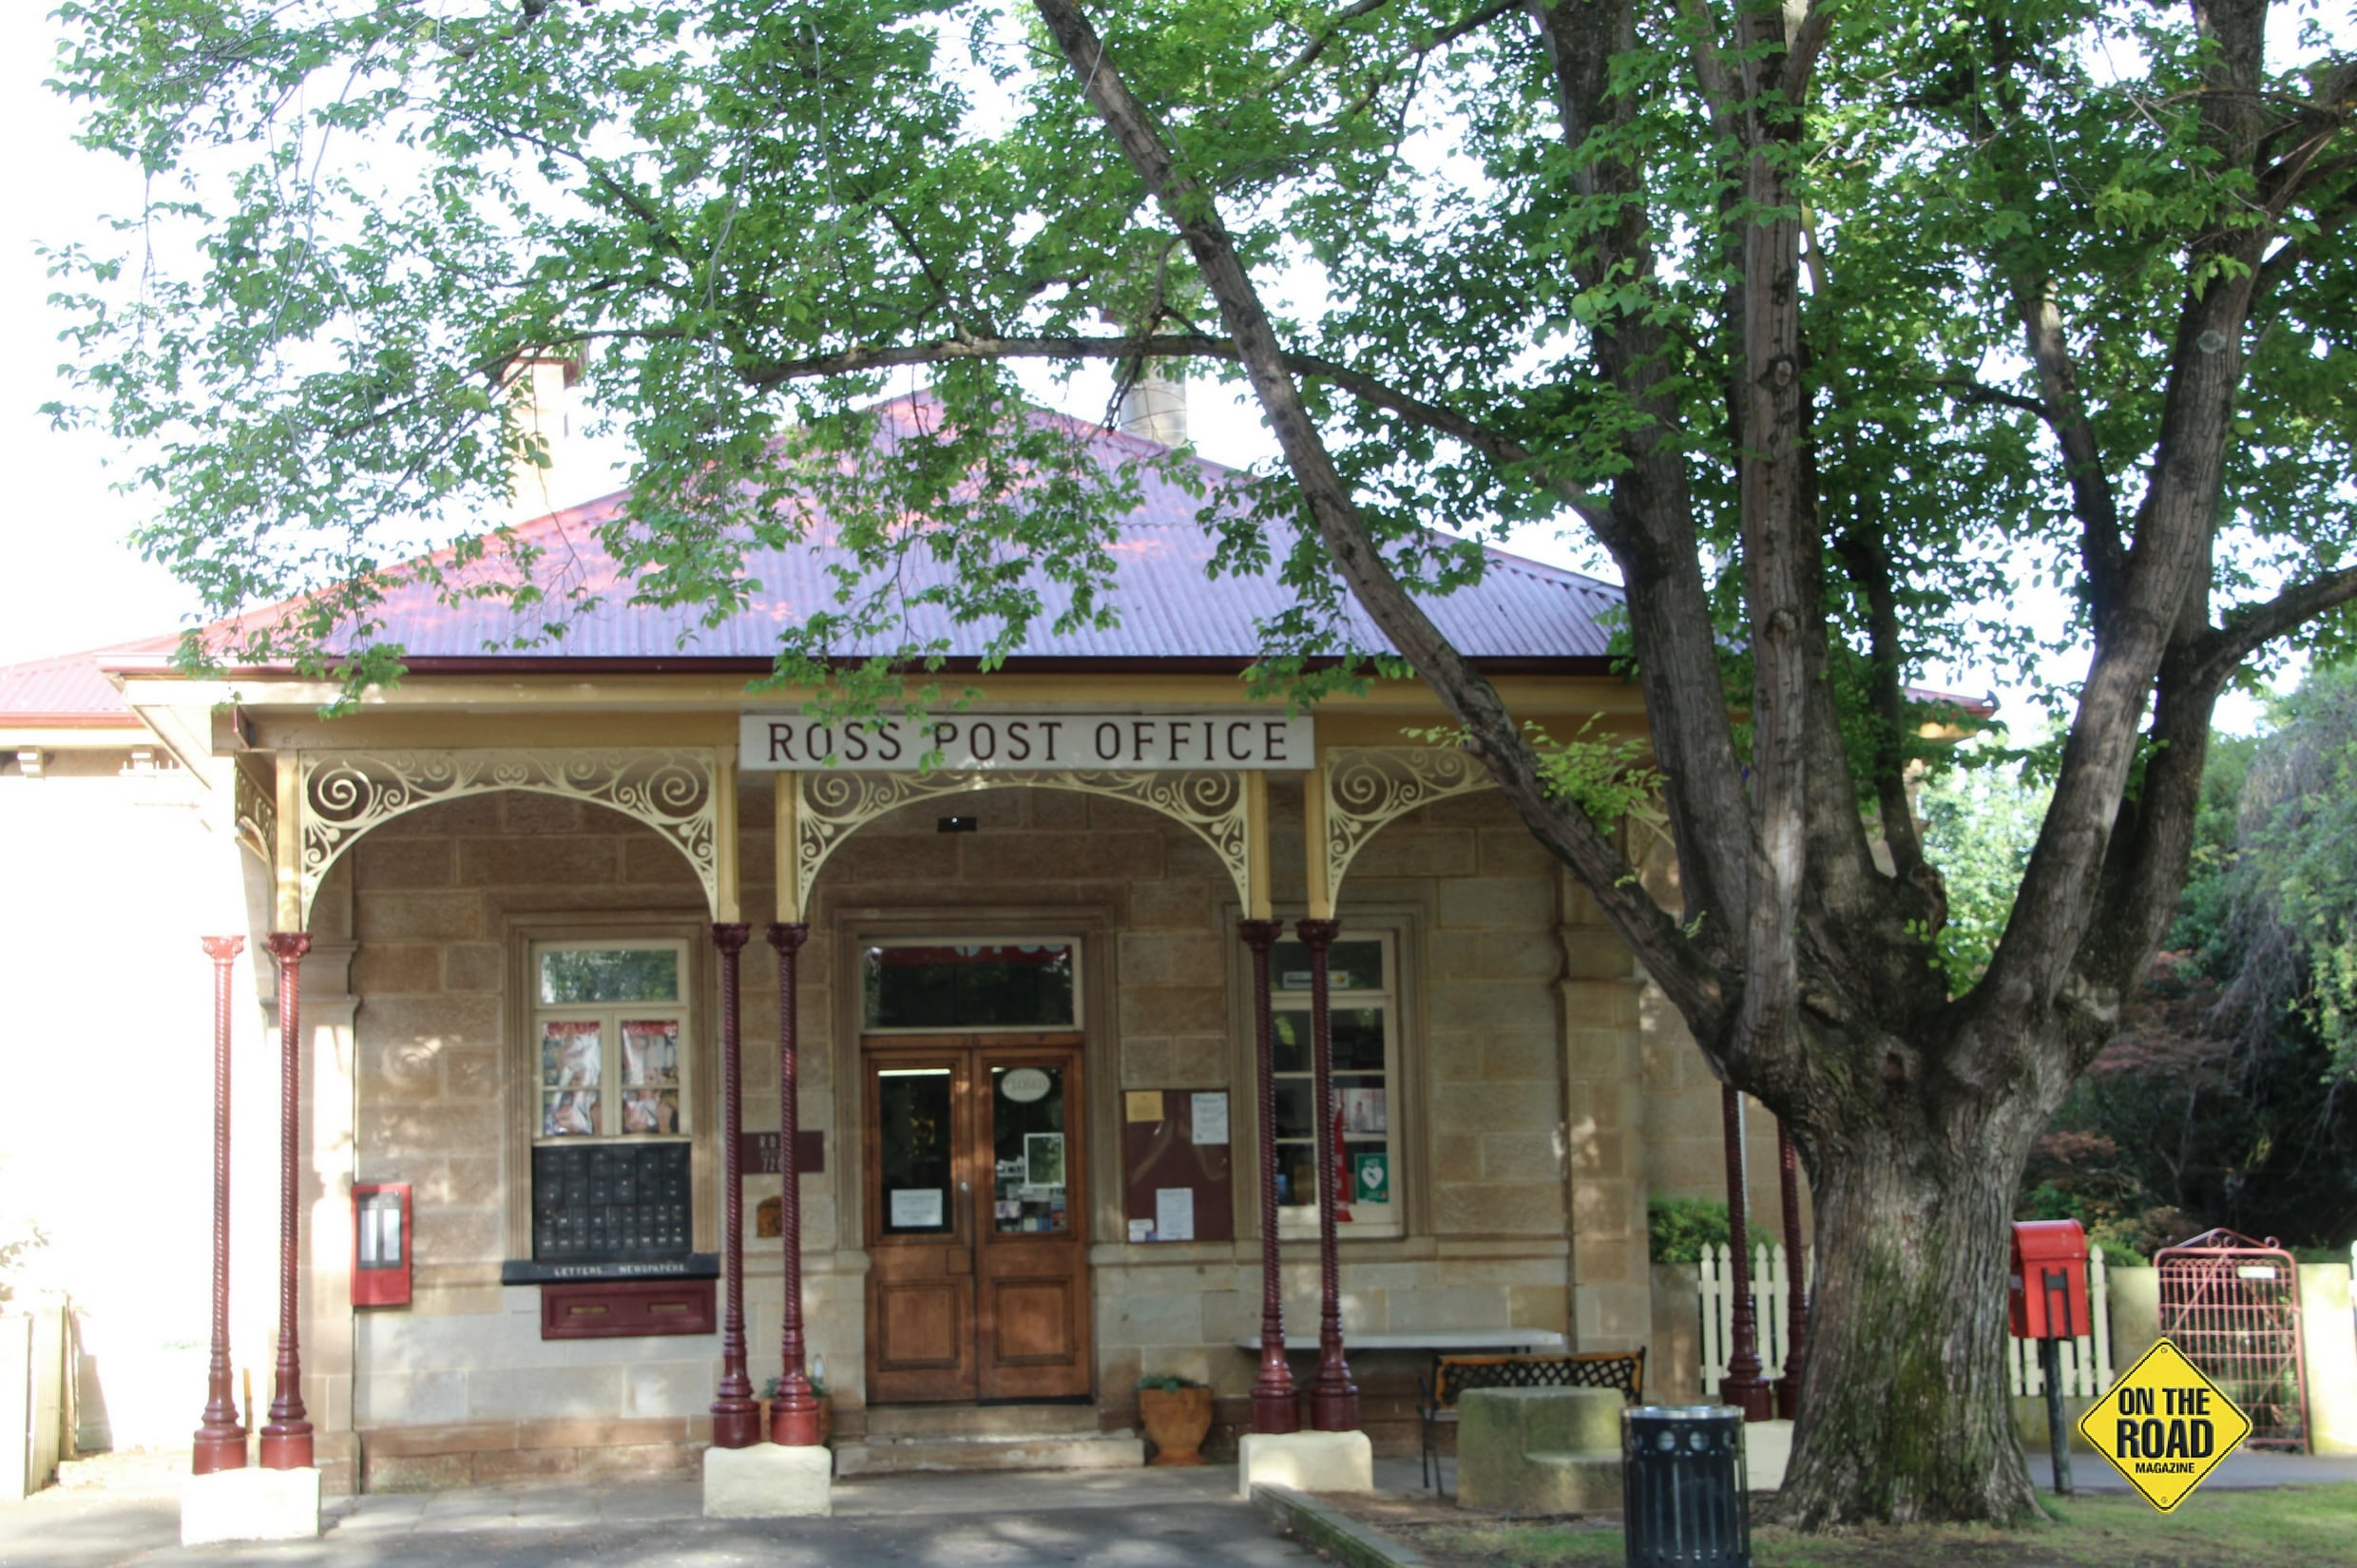 Ross Post Office